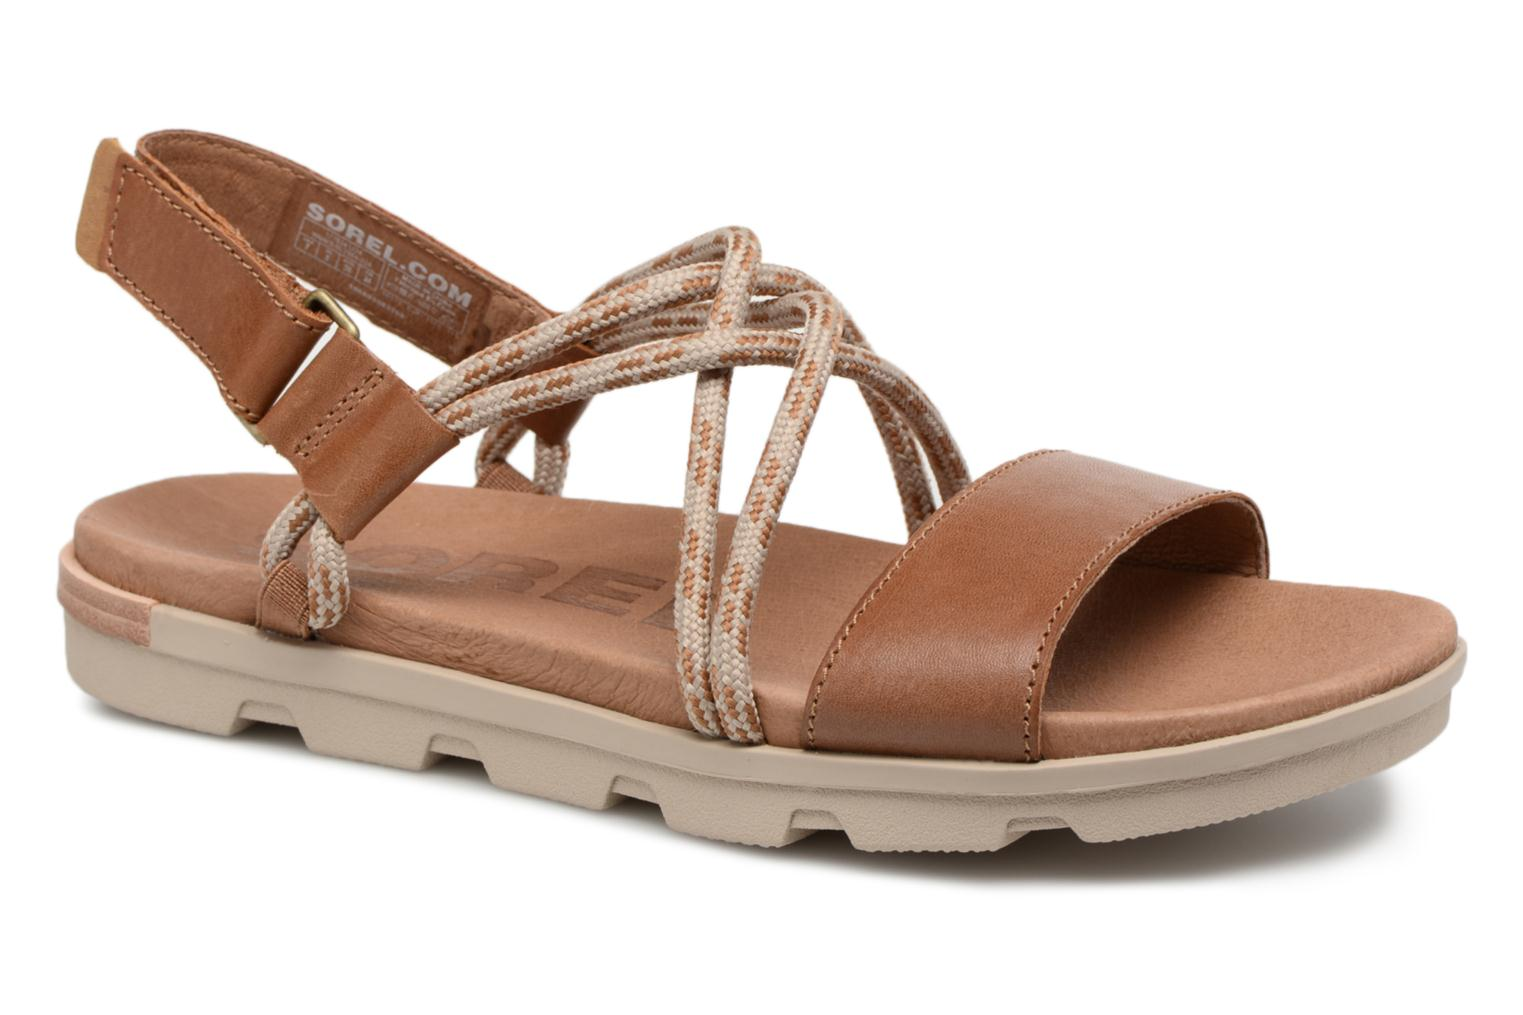 Marques Chaussure femme Sorel femme Torpeda Sandal II Camel Brown Ancient Fossil